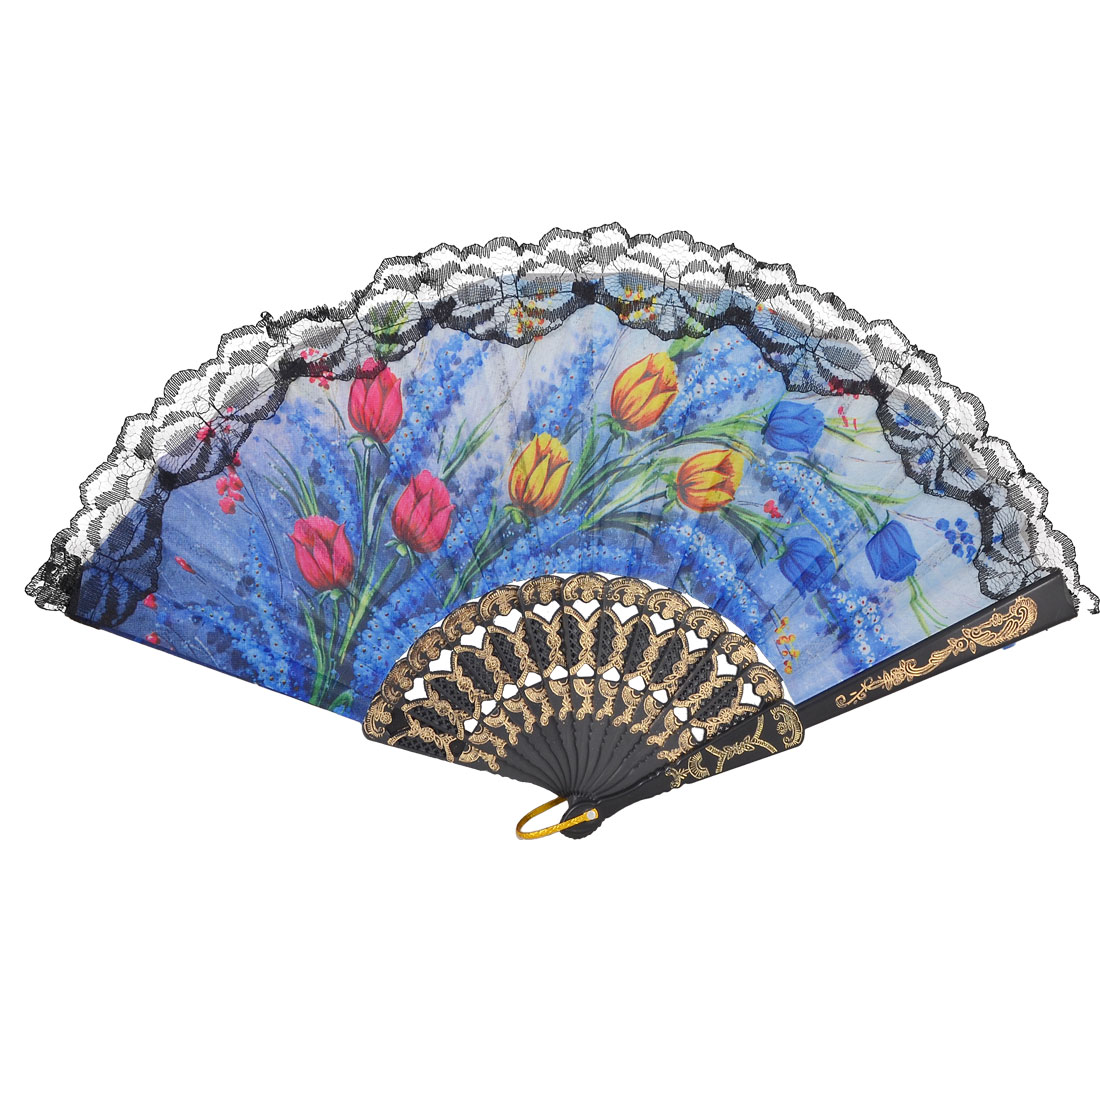 Embossing Ribs Multicolor Floral Printed Cloth Black Lace Trim Folding Hand Fan